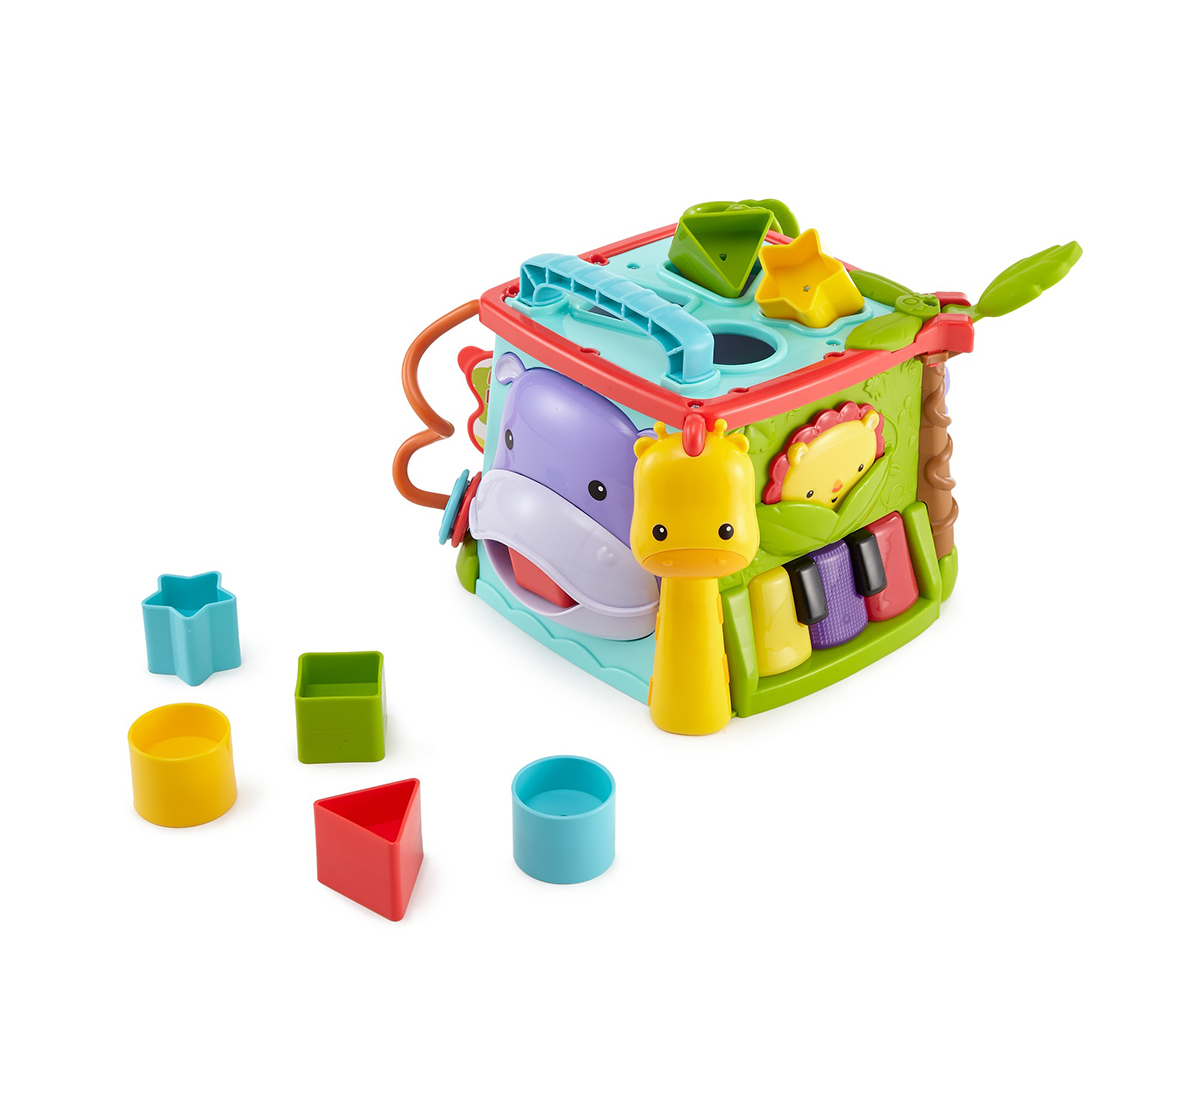 Fisher-Price   Fisher-Price Play & Learn Activity Cube Fun Game for Age 6M+